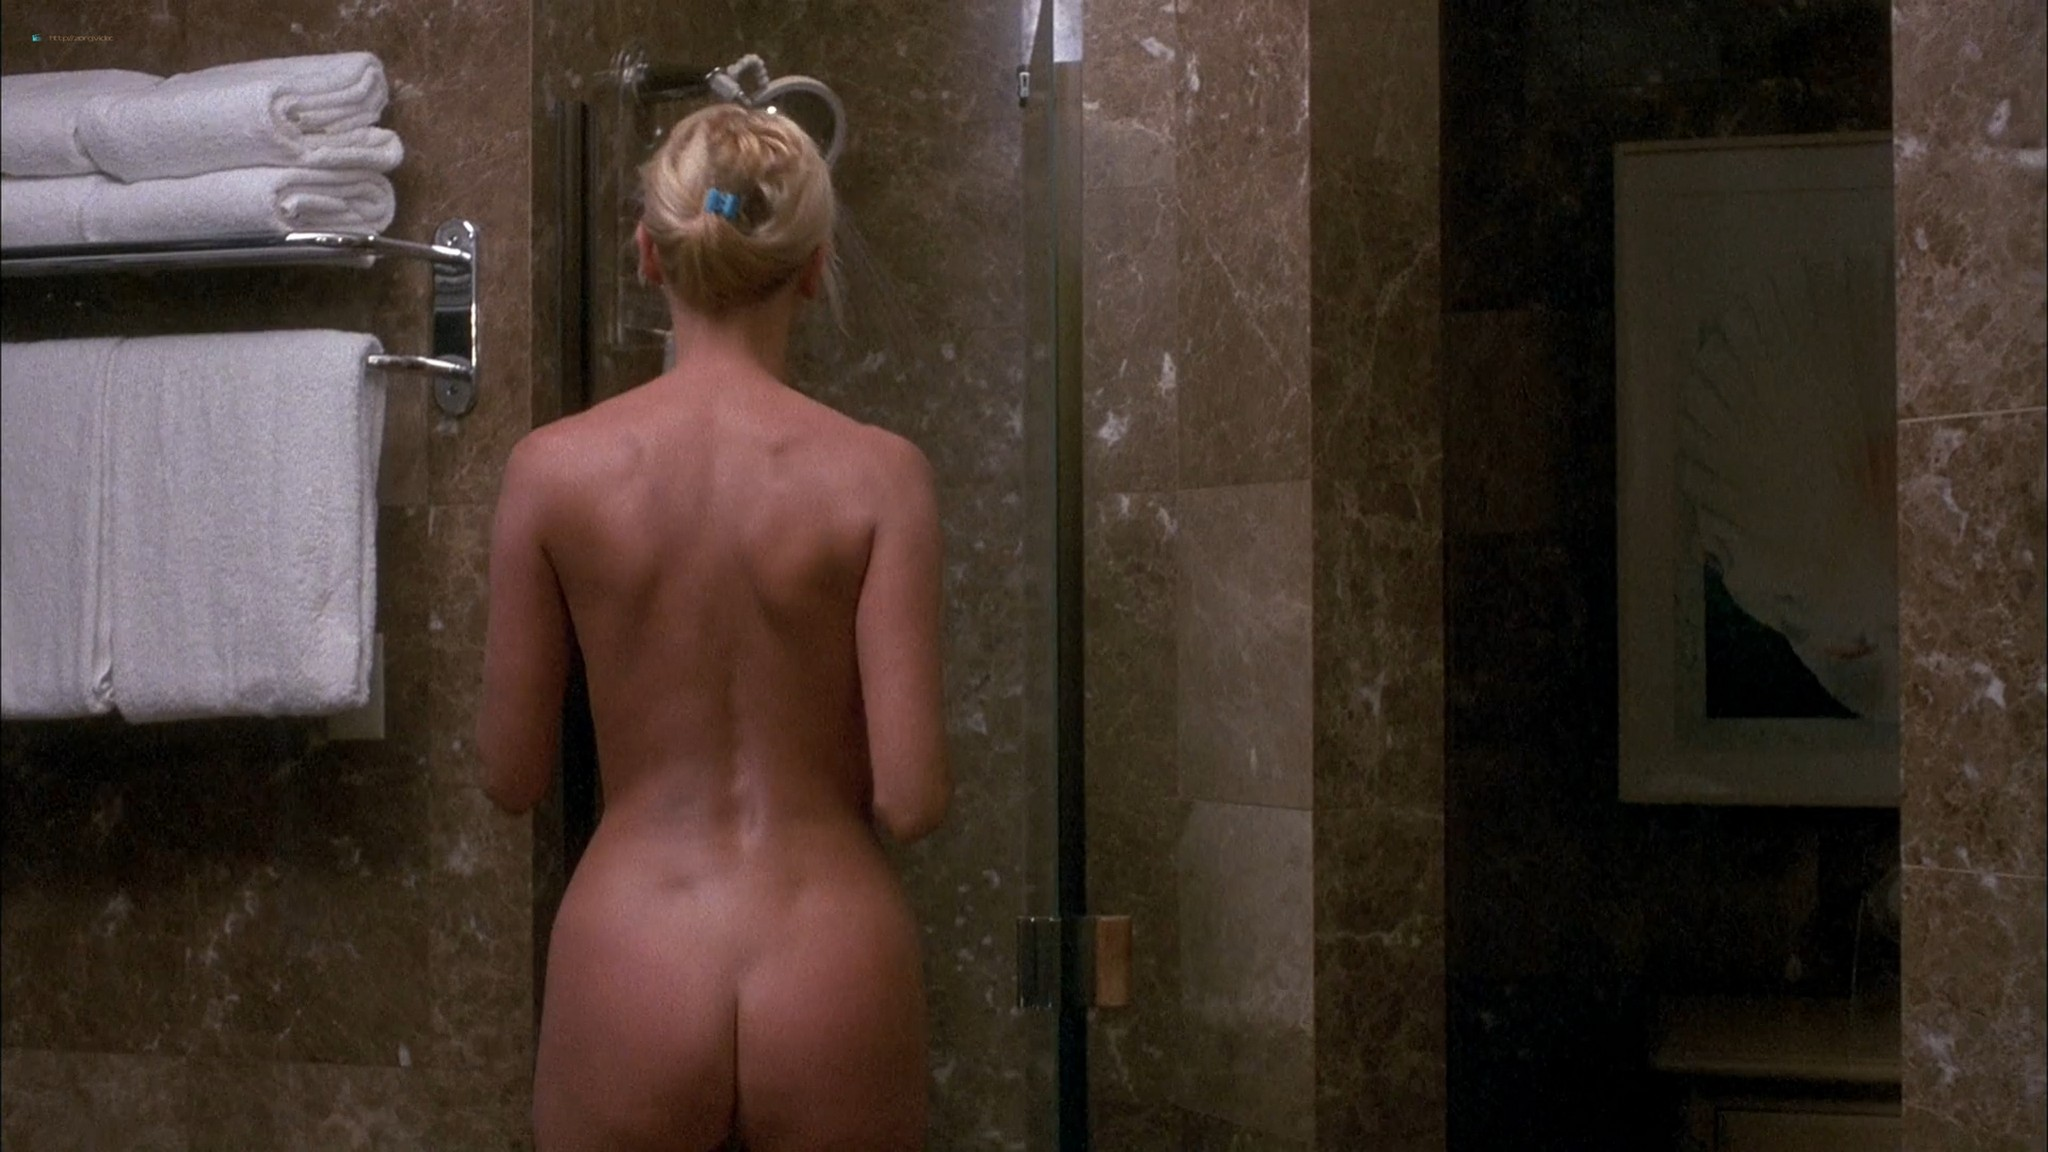 Kari Wuhrer wet and hot Amy Lindsay and others nude sex - Final Examination (2003) HD 1080p Web (15)